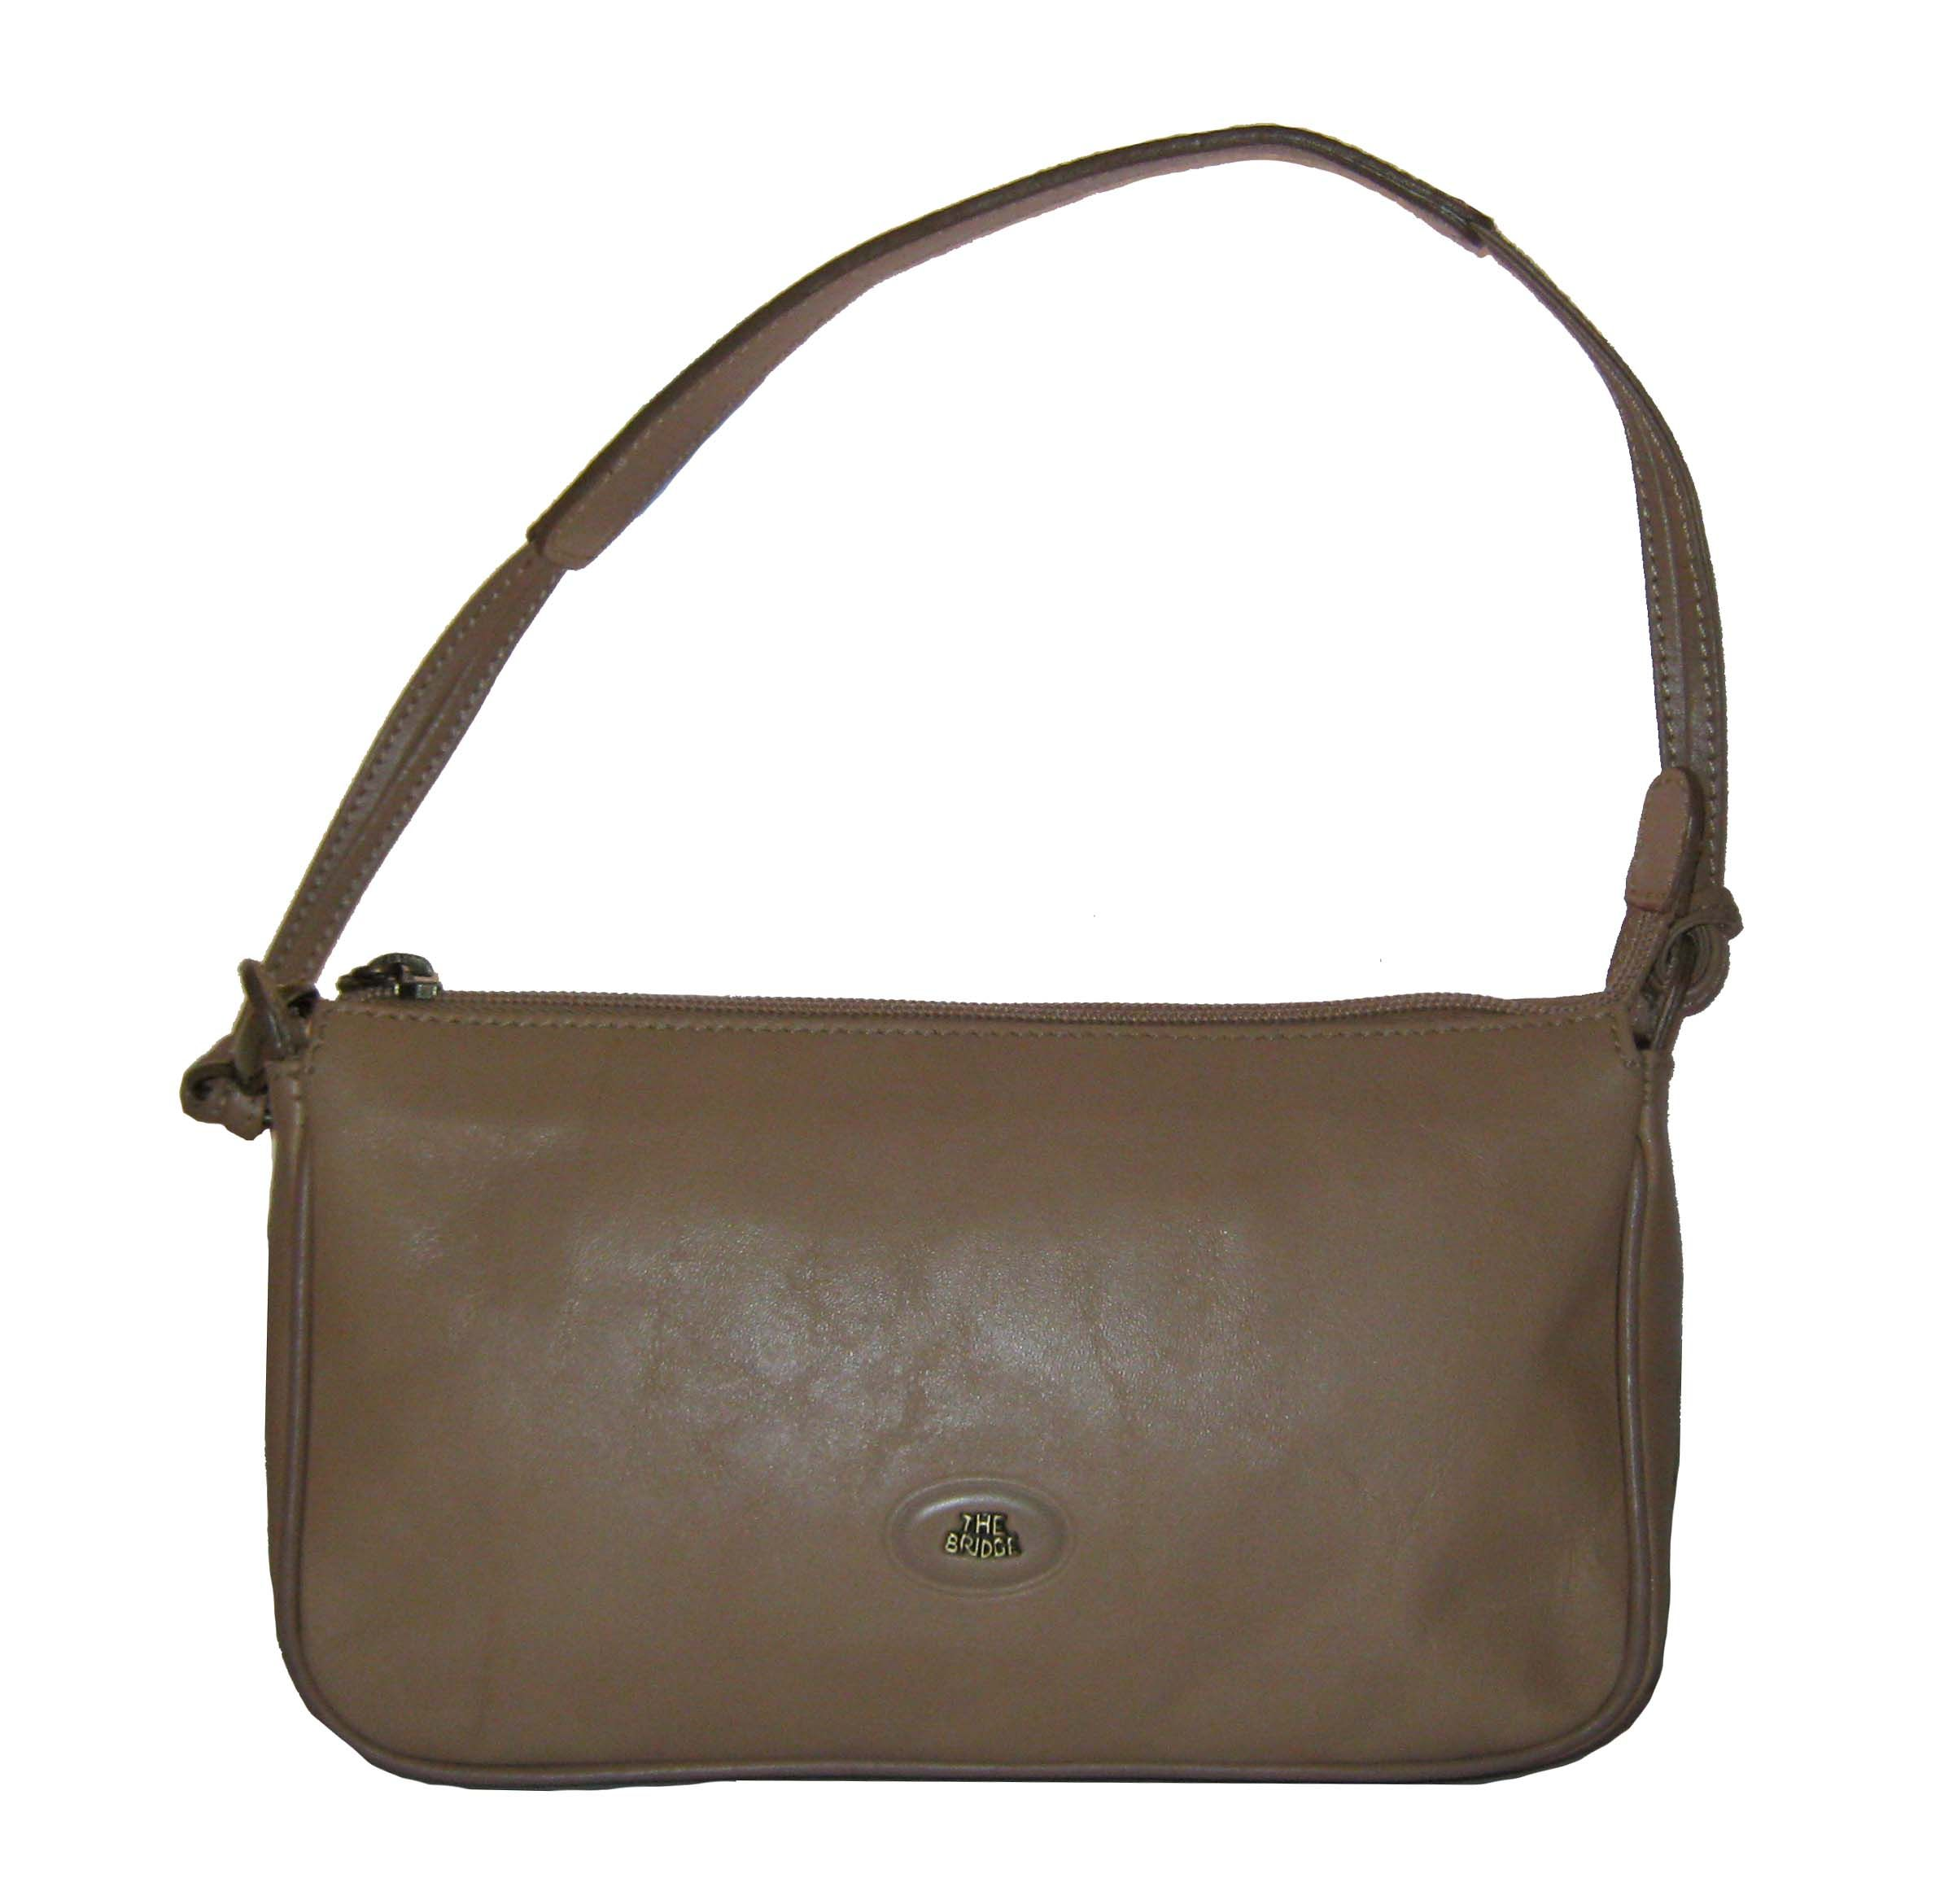 A genuine The Bridge bag...made in Florence...RRP £230! Top quality leather. 88b677b182